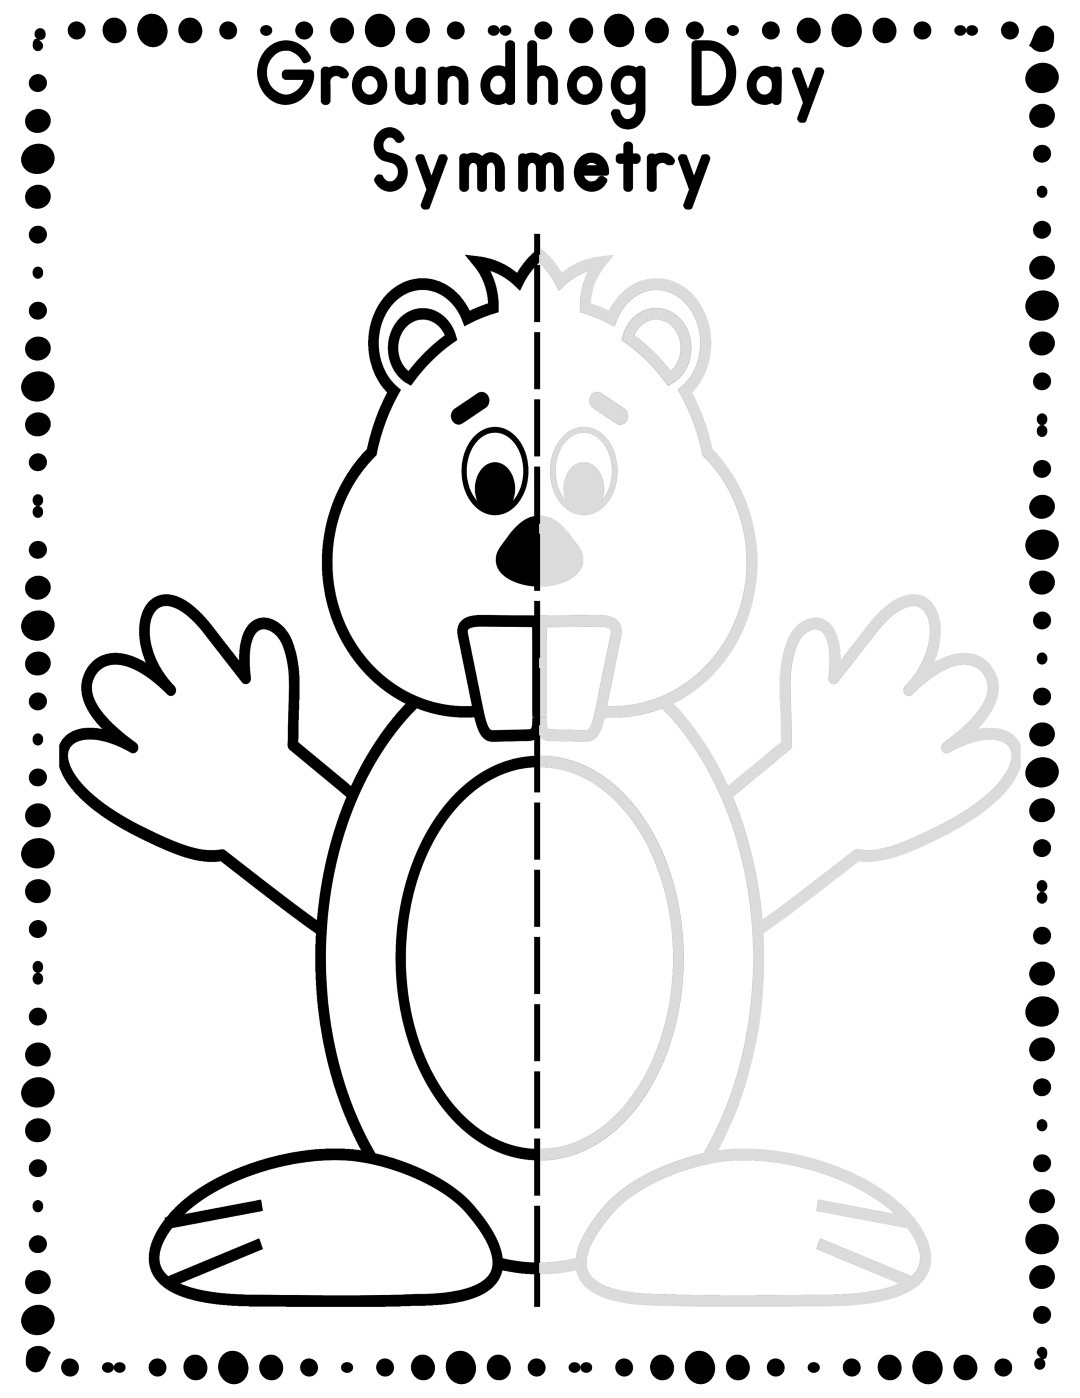 Groundhog Day Worksheets - Best Coloring Pages For Kids - Free Groundhog Day Printables